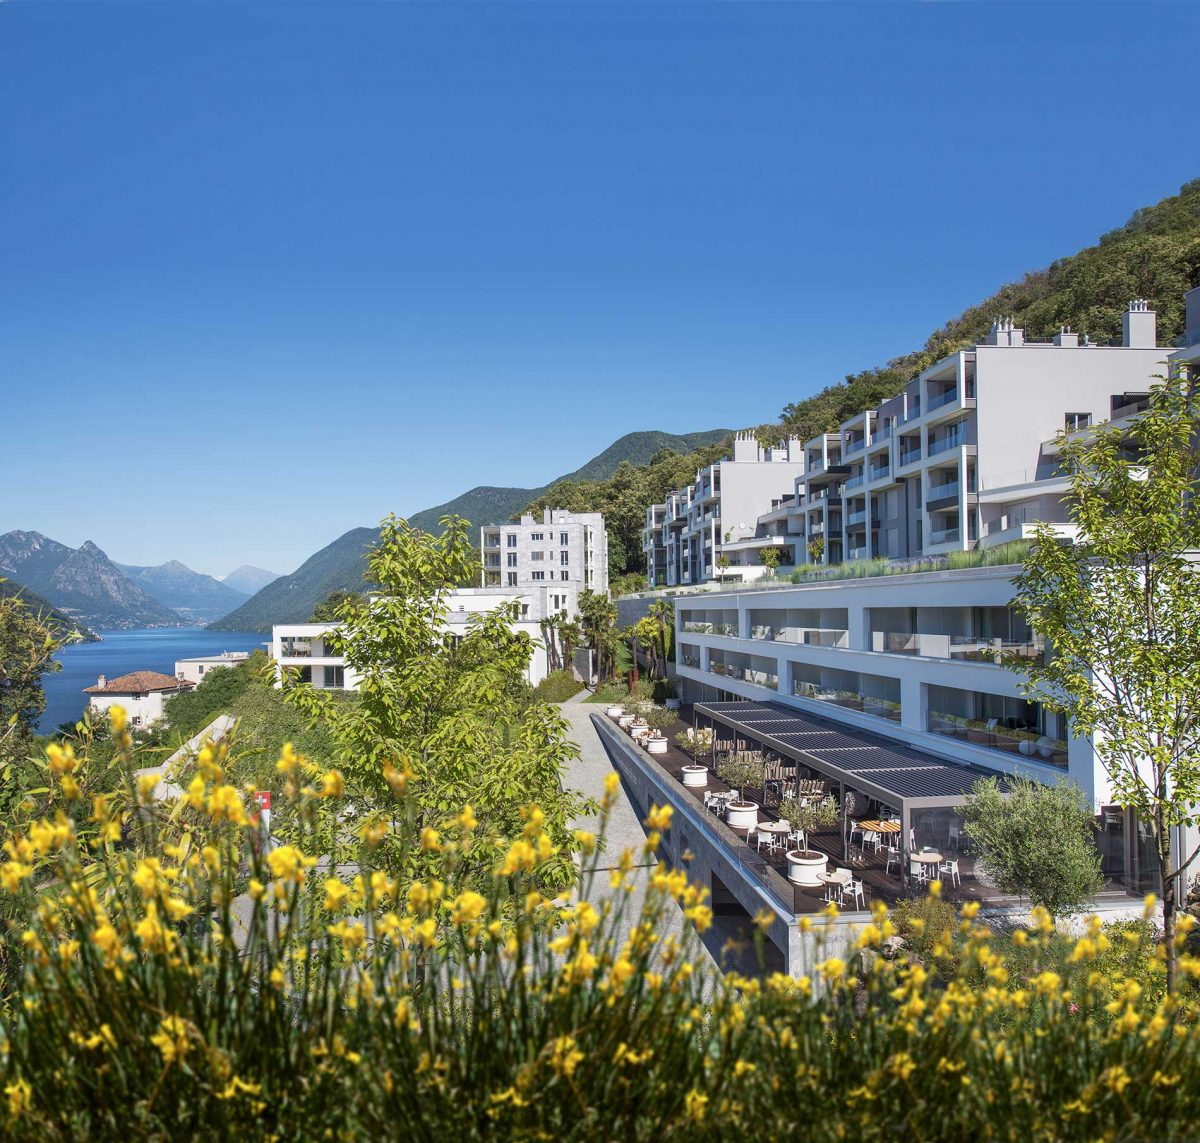 The exterior of The View Lugano on a sunny day